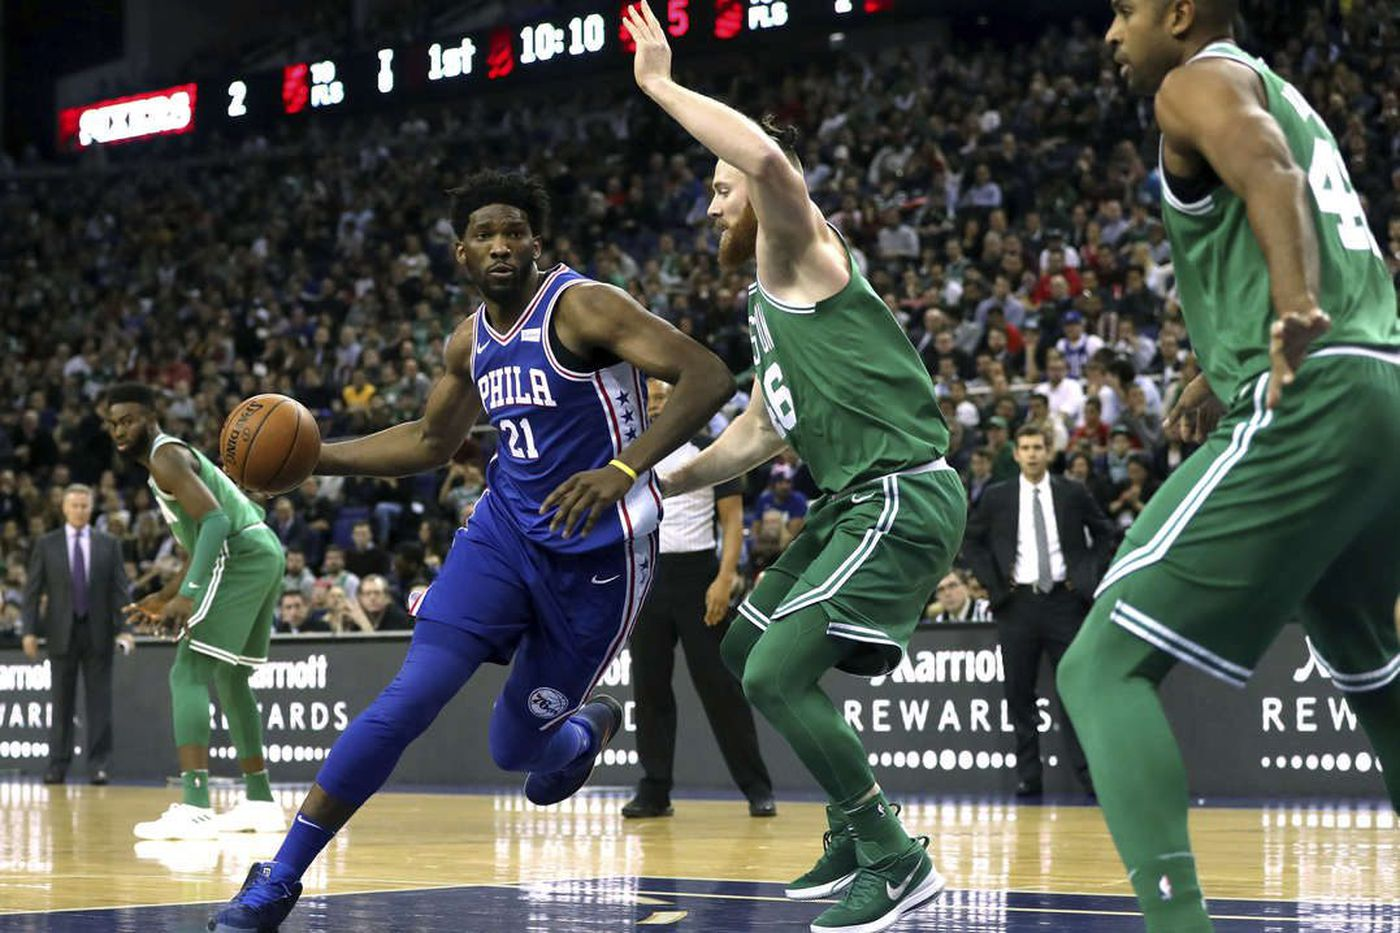 Sixers-Celtics preview: Needing to get Joel Embiid involved early